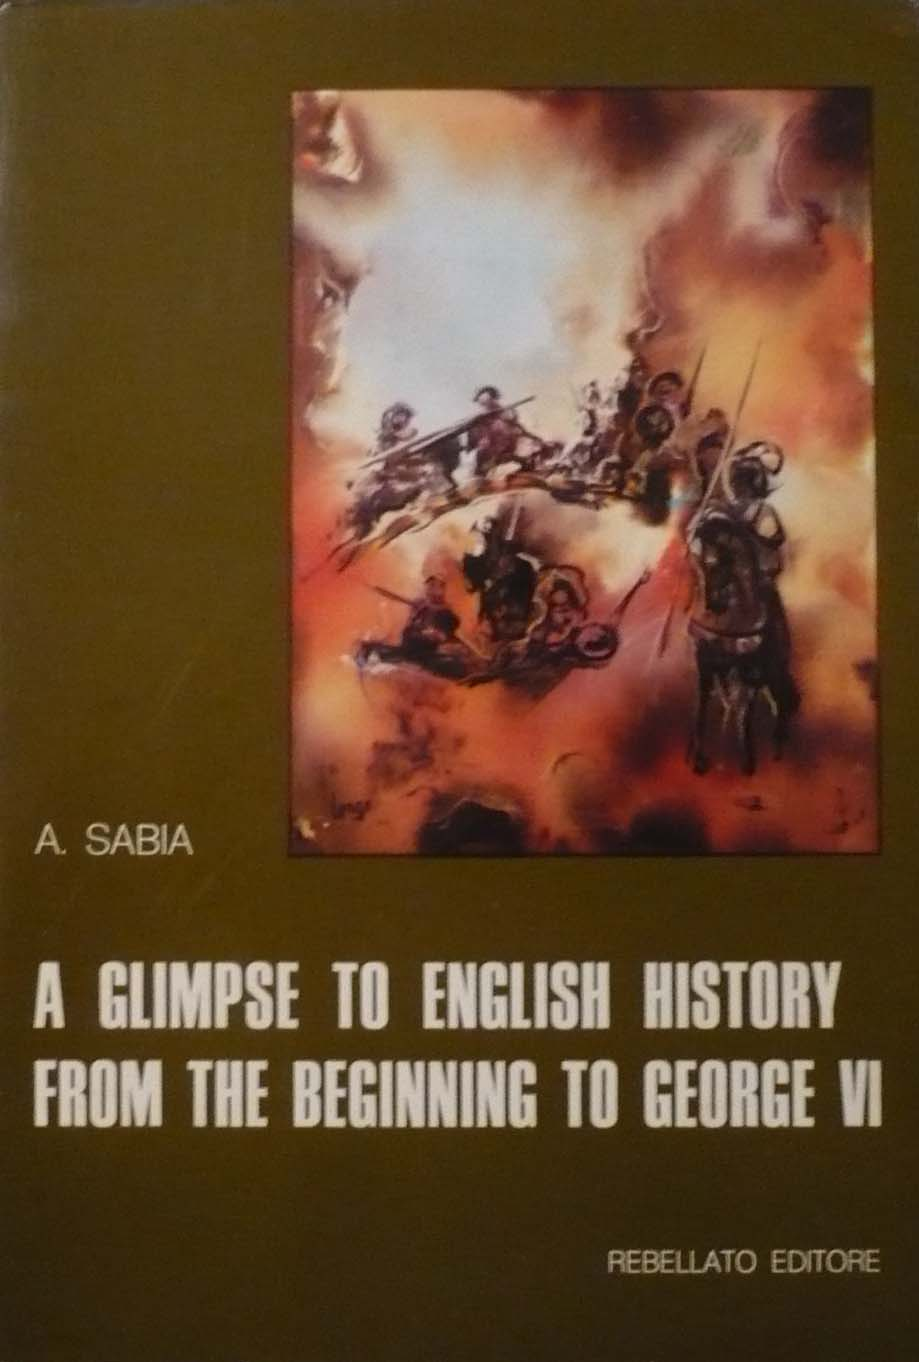 A glimpse to English history from the beginning to George VI